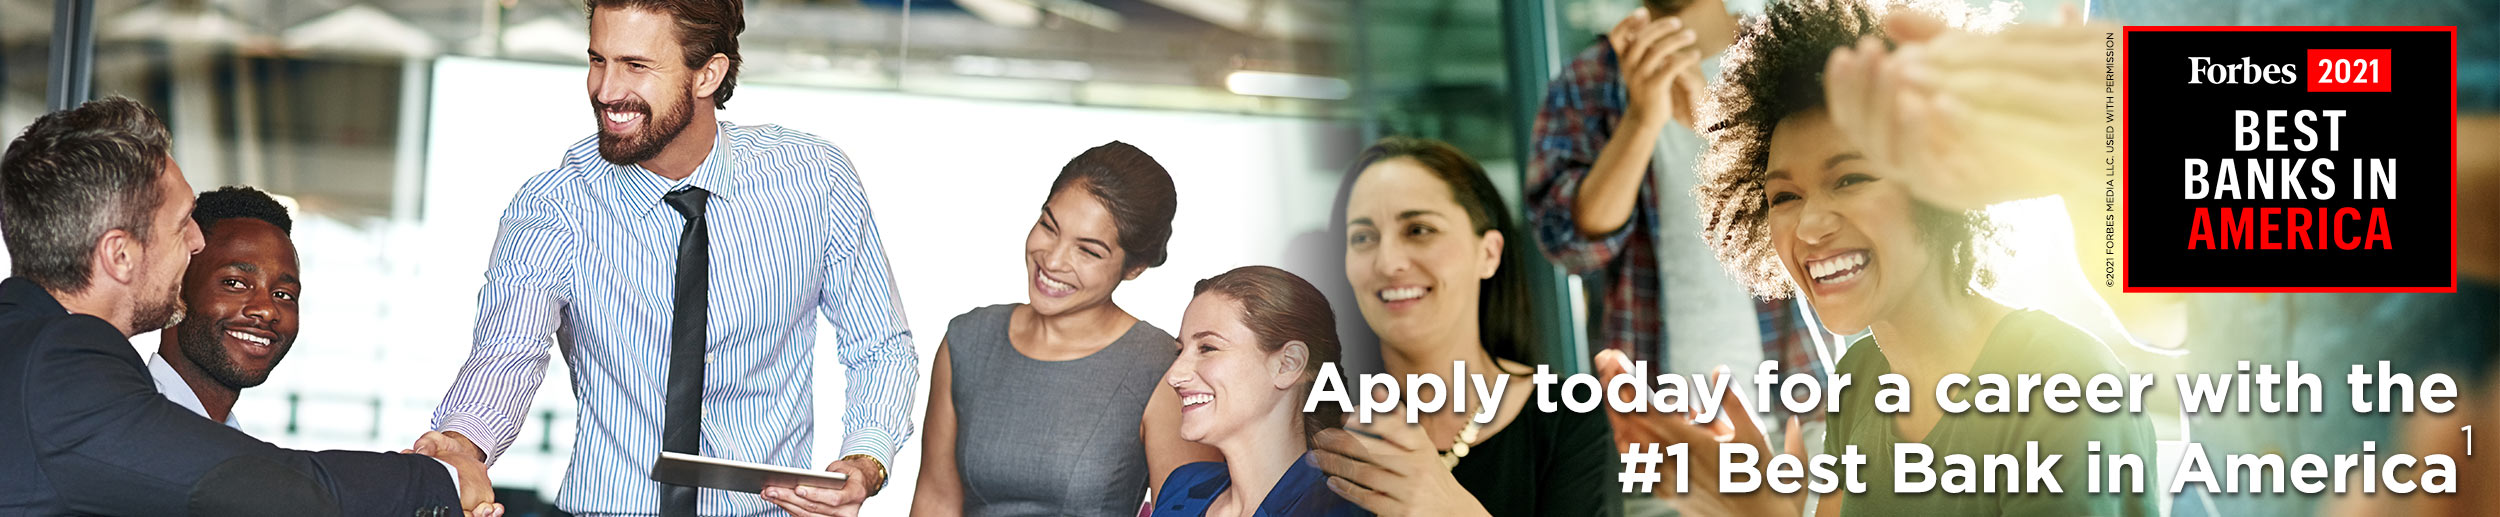 Apply for a career with the #1 Best Bank in America